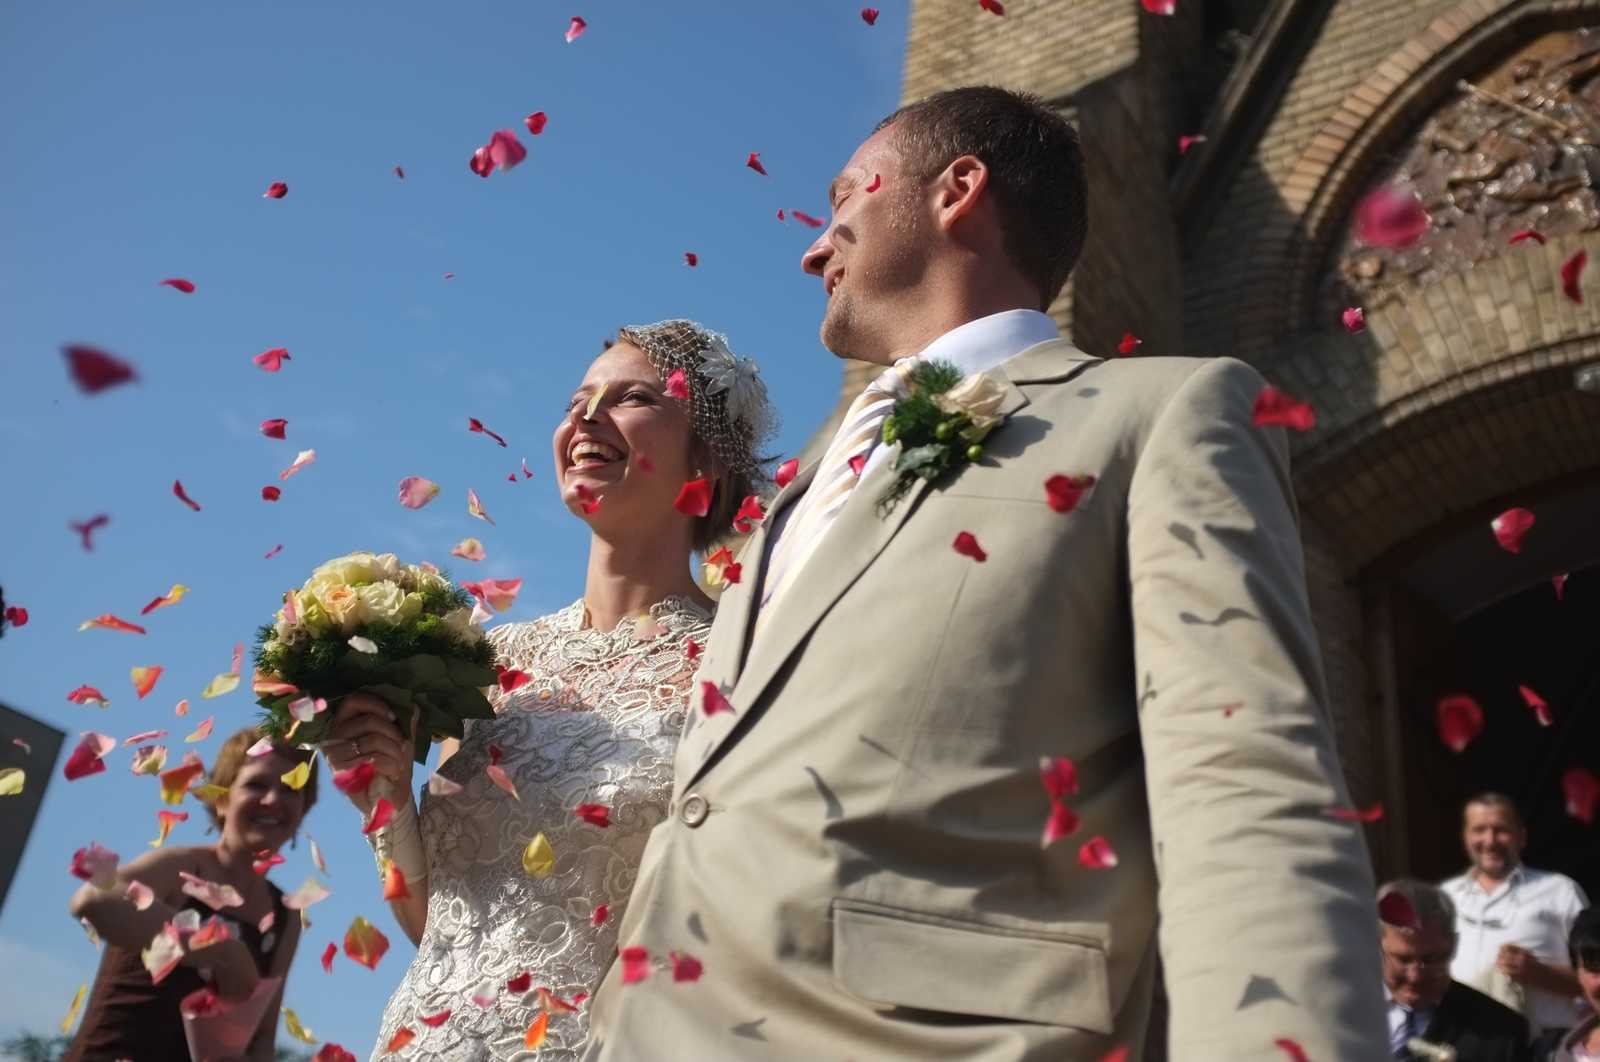 Wedding photography revisited